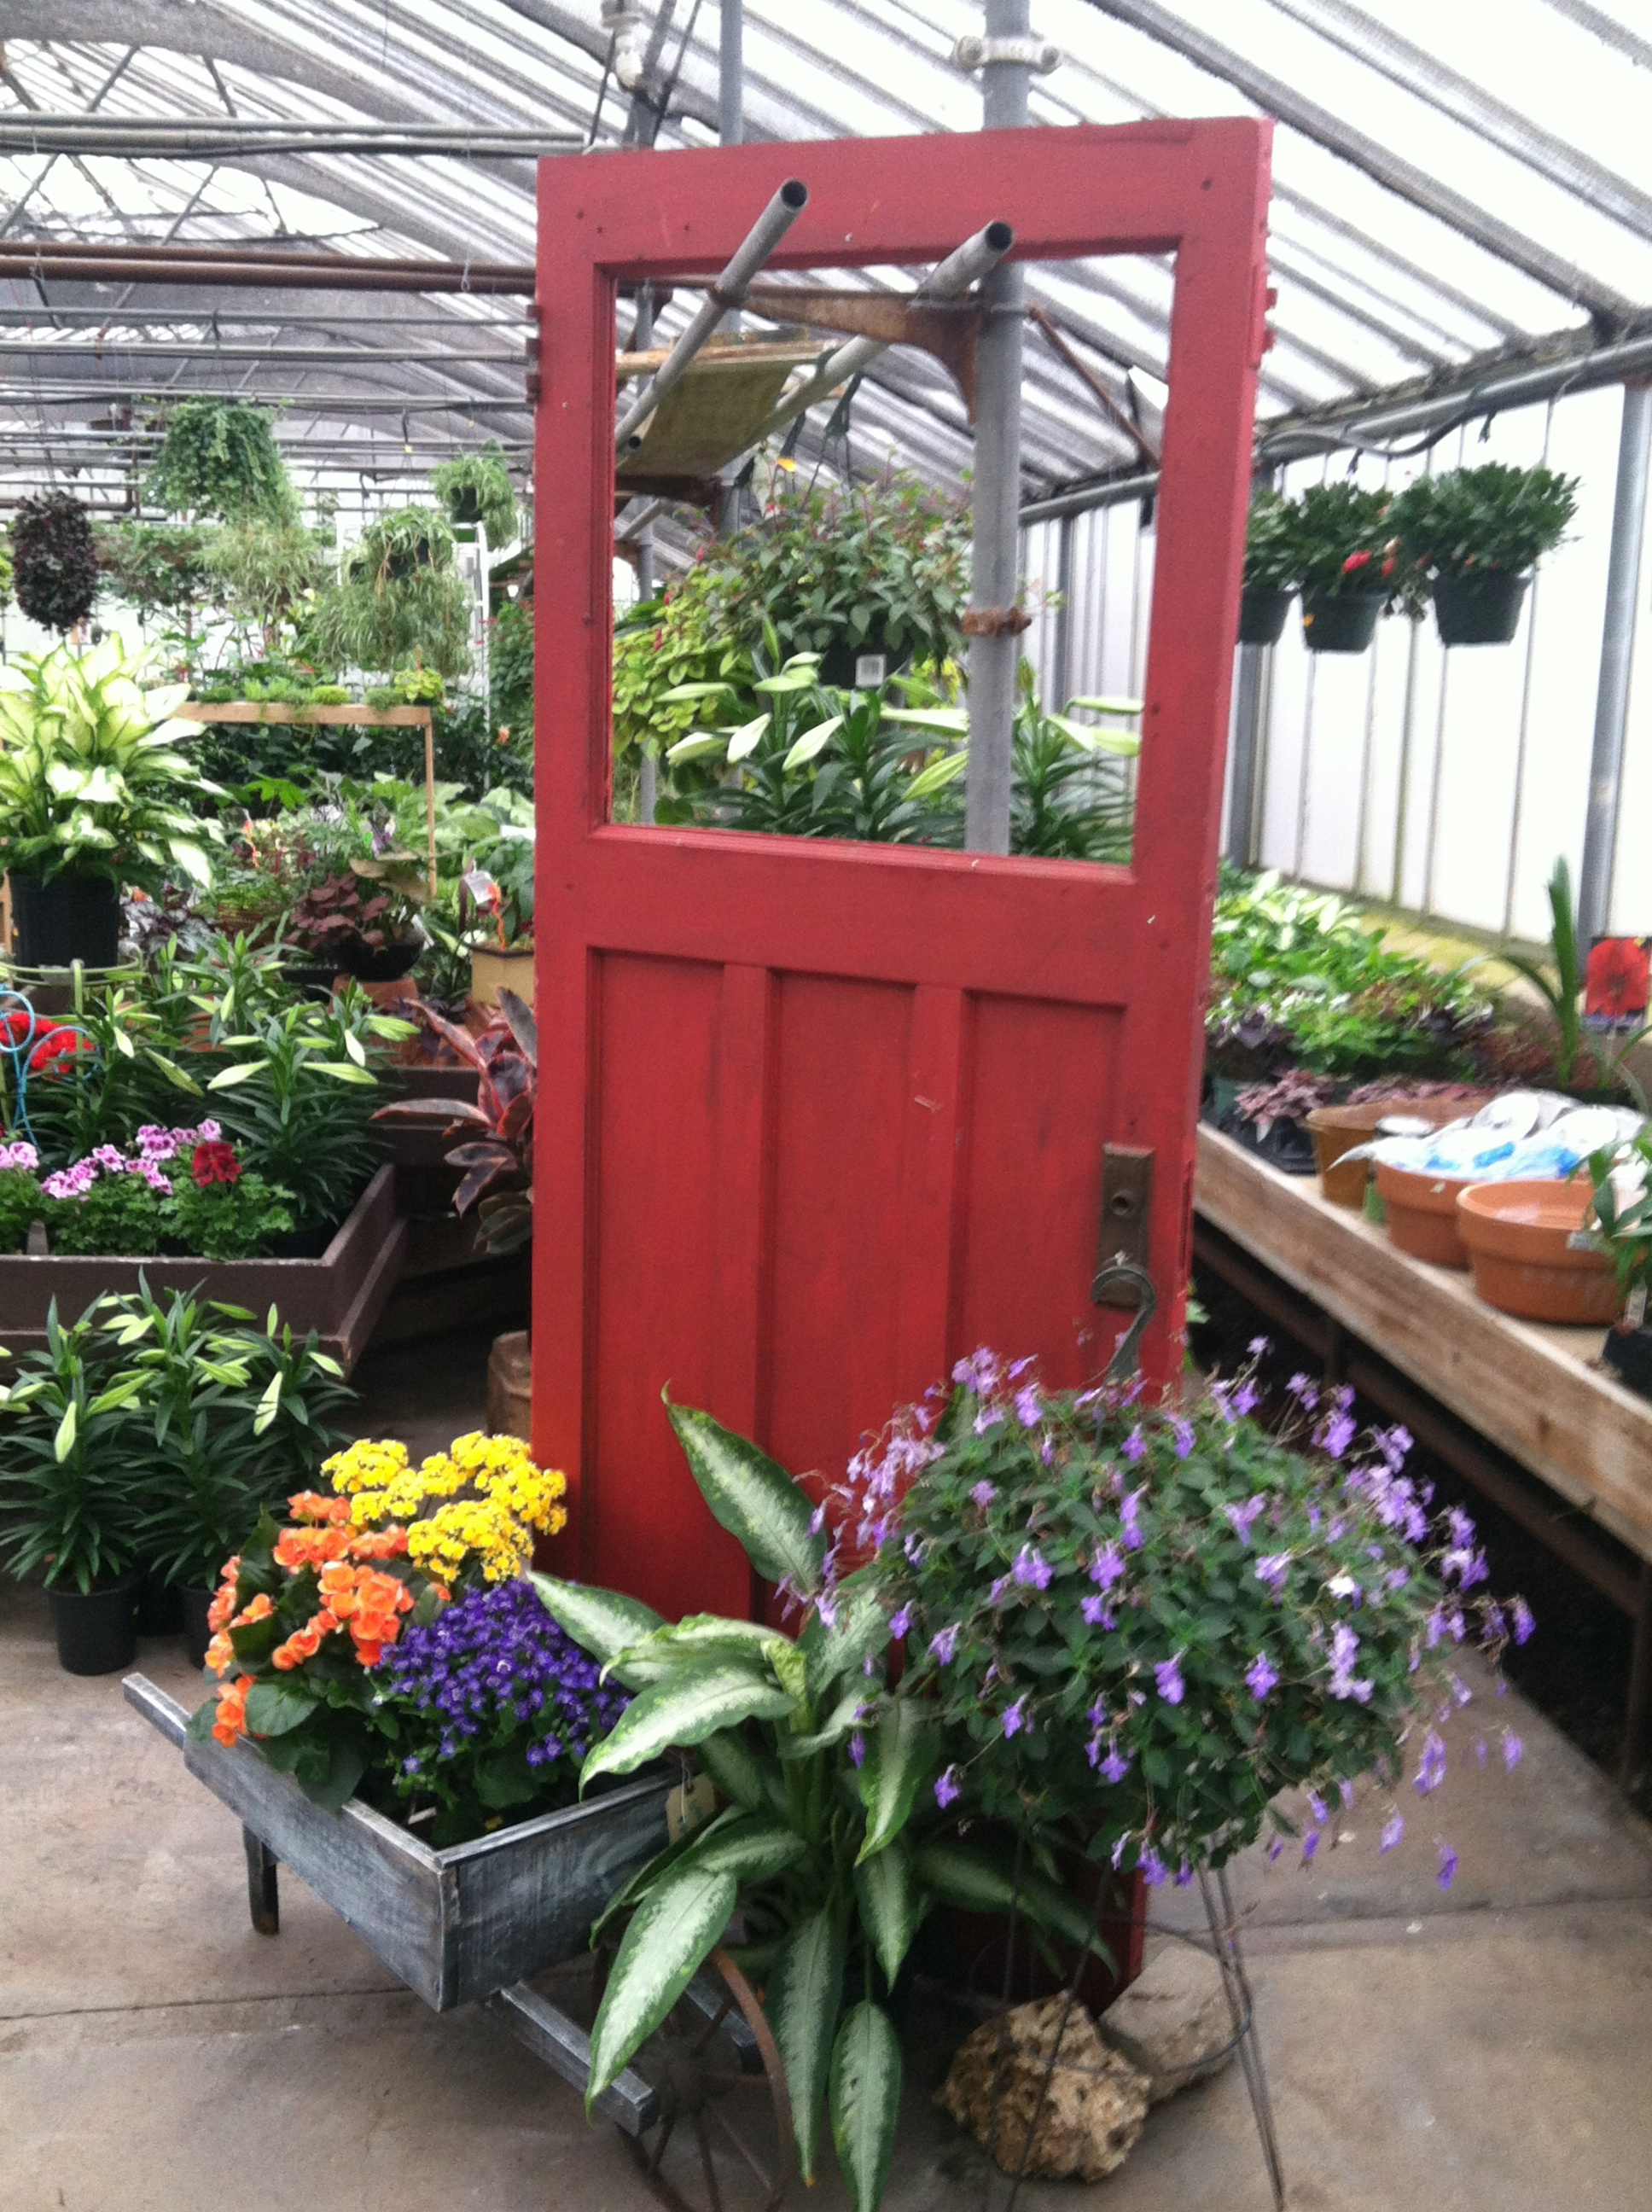 May's Floral Garden Inc